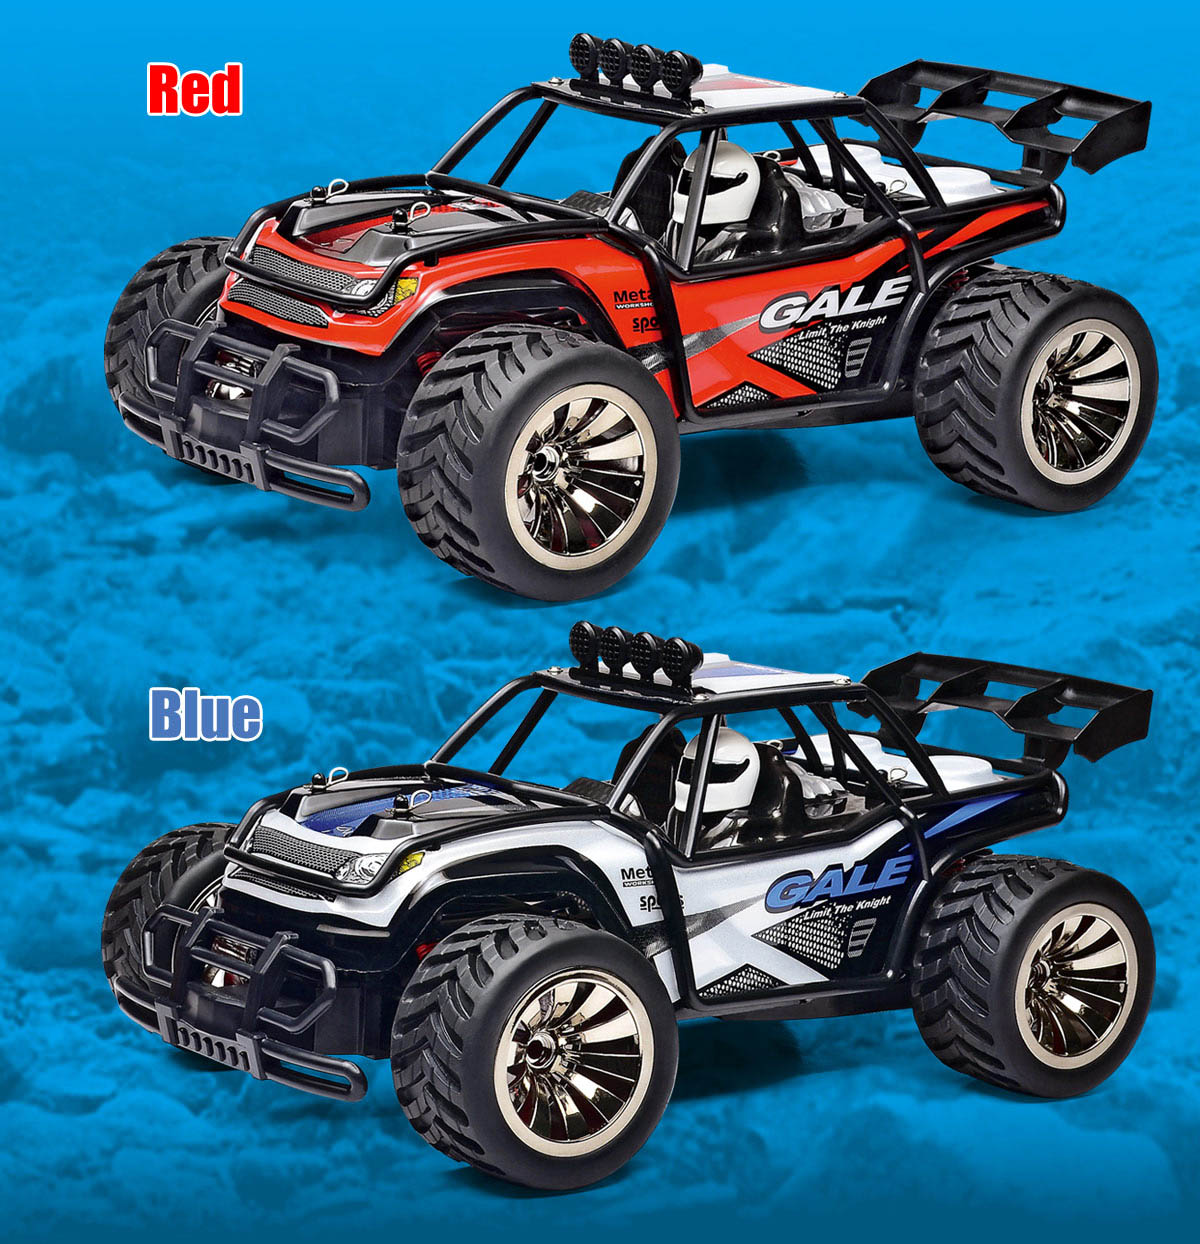 SUBOTECH 1512 1:16 2WD RC Off-road Racing Car RTR 2.4GHz Proportional Control / Rear Engine / PVC Shell